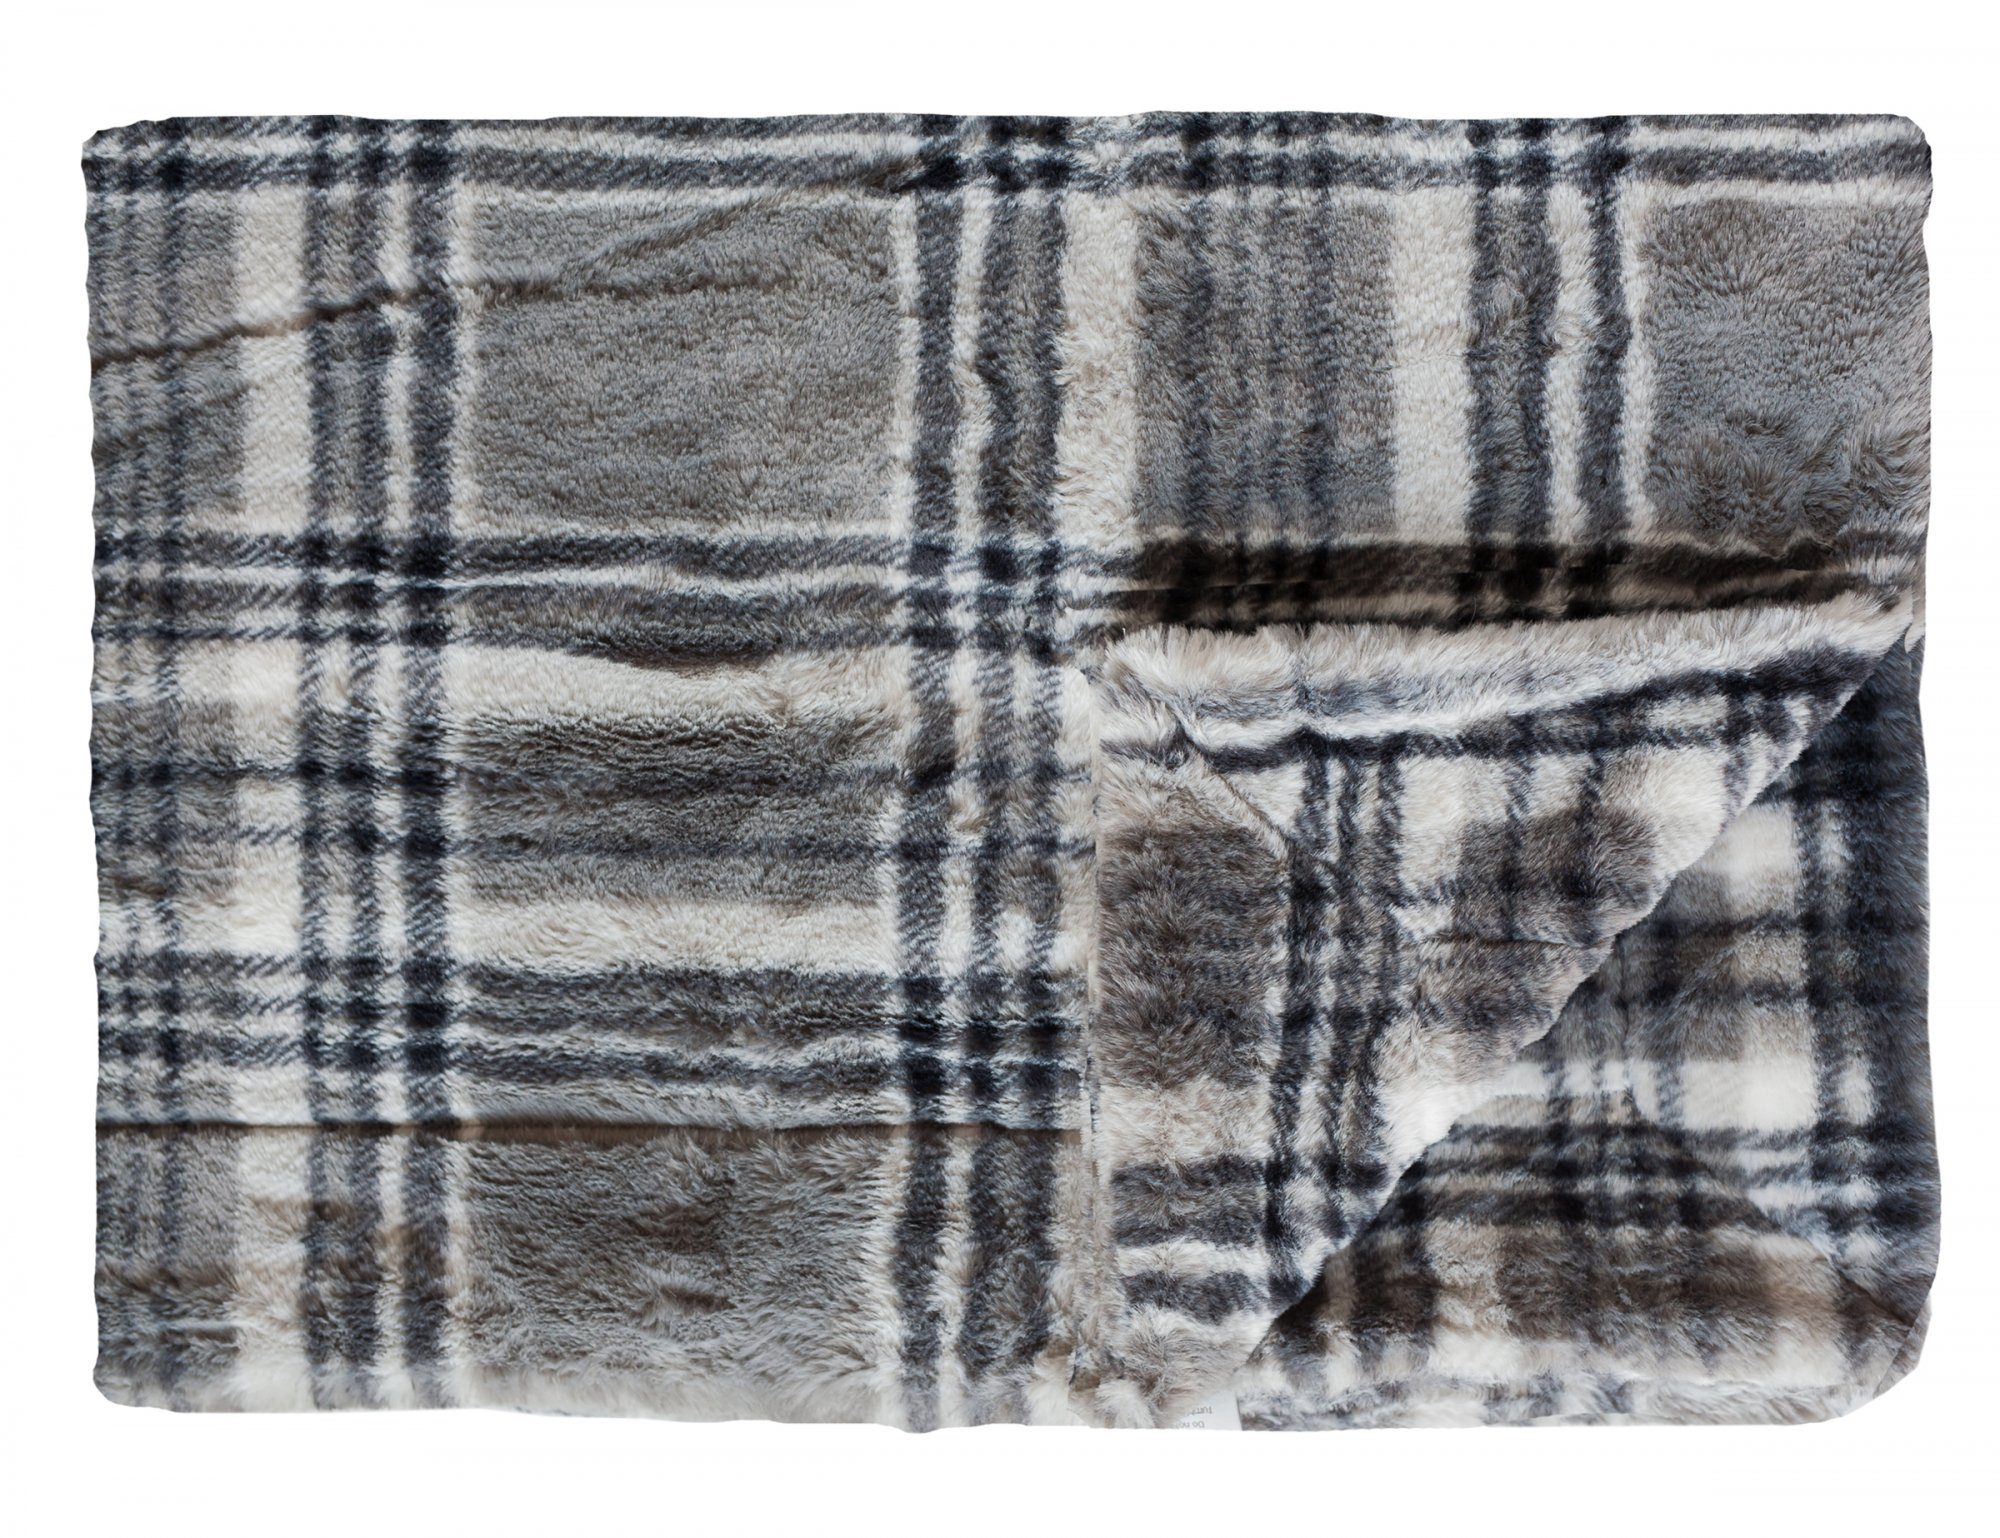 Urban Plaid - Charcoal